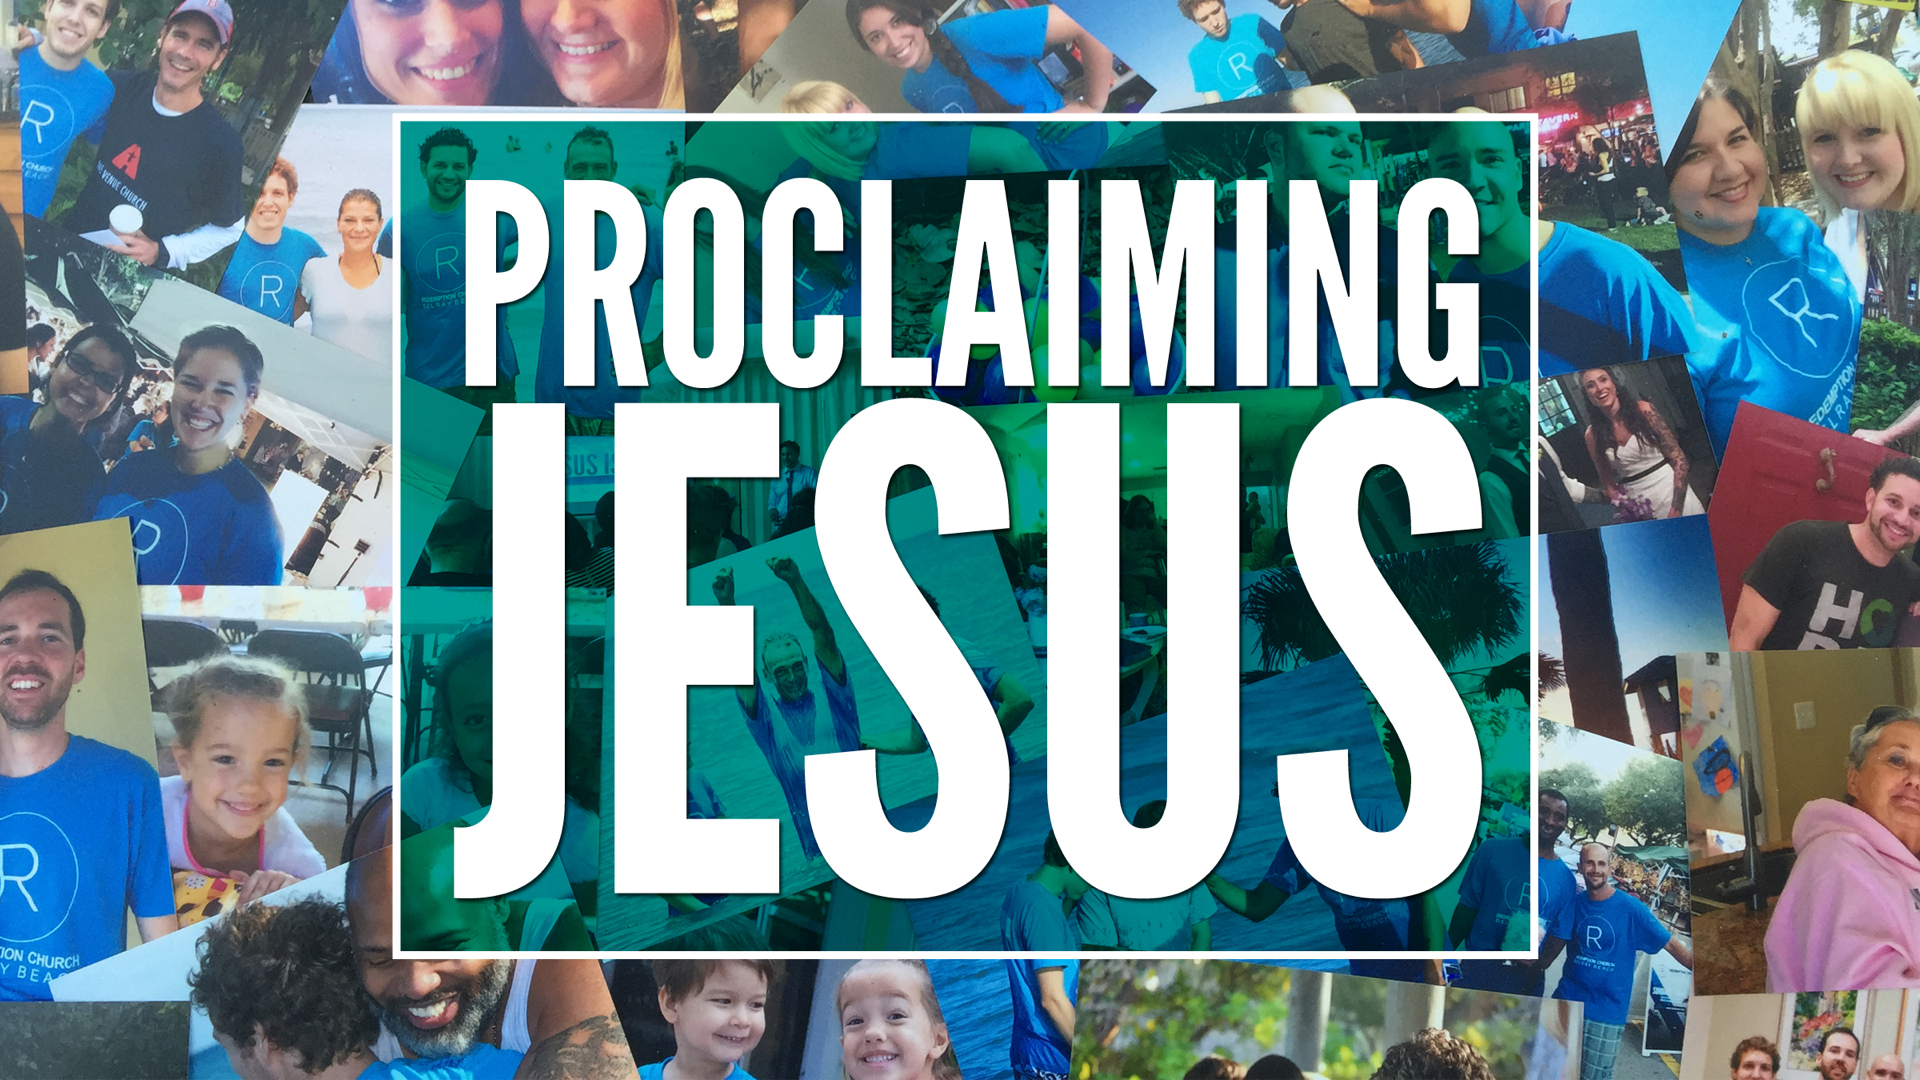 2015-01-11 Word of Mouth - Proclaiming Jesus.jpg